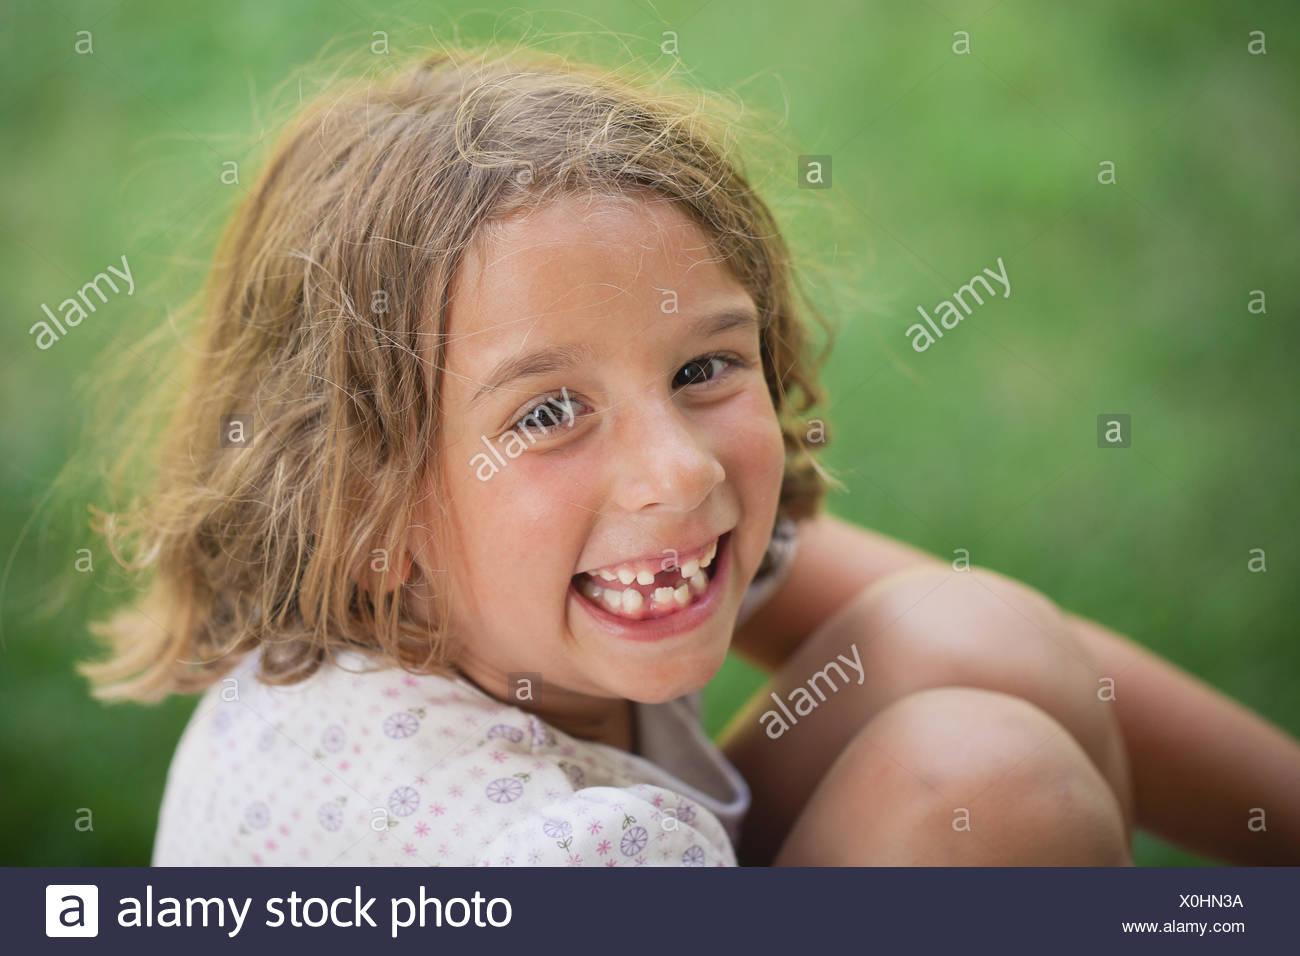 Girl (4-5) smiling with missing tooth - Stock Image